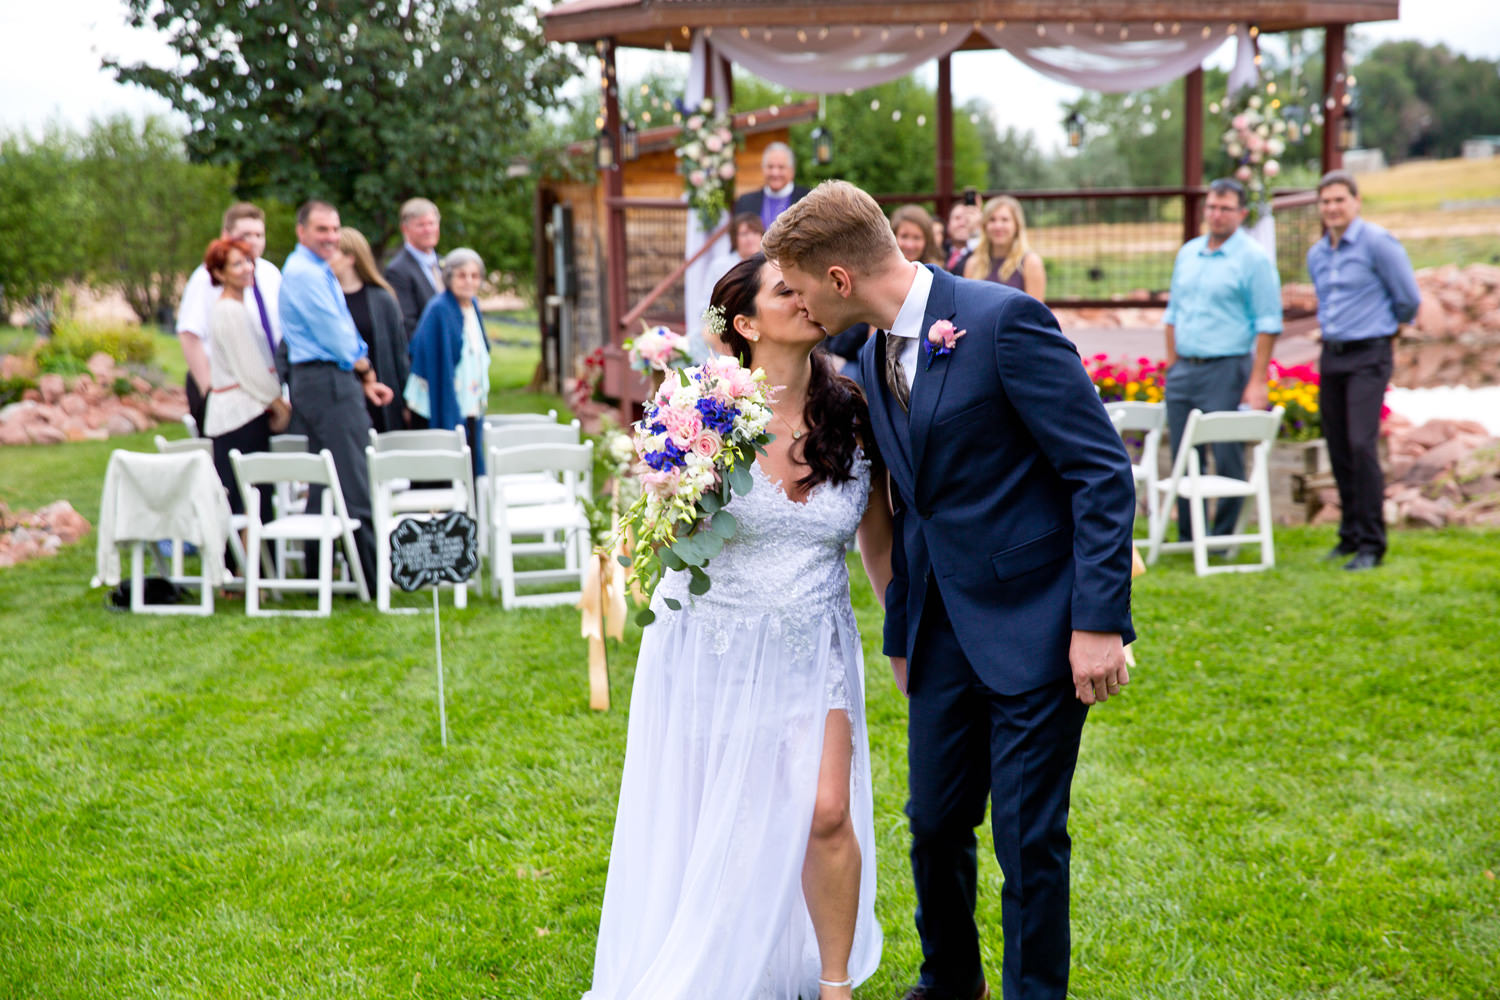 preserve-at-bingham-hill-wedding-tomKphoto-010.jpg